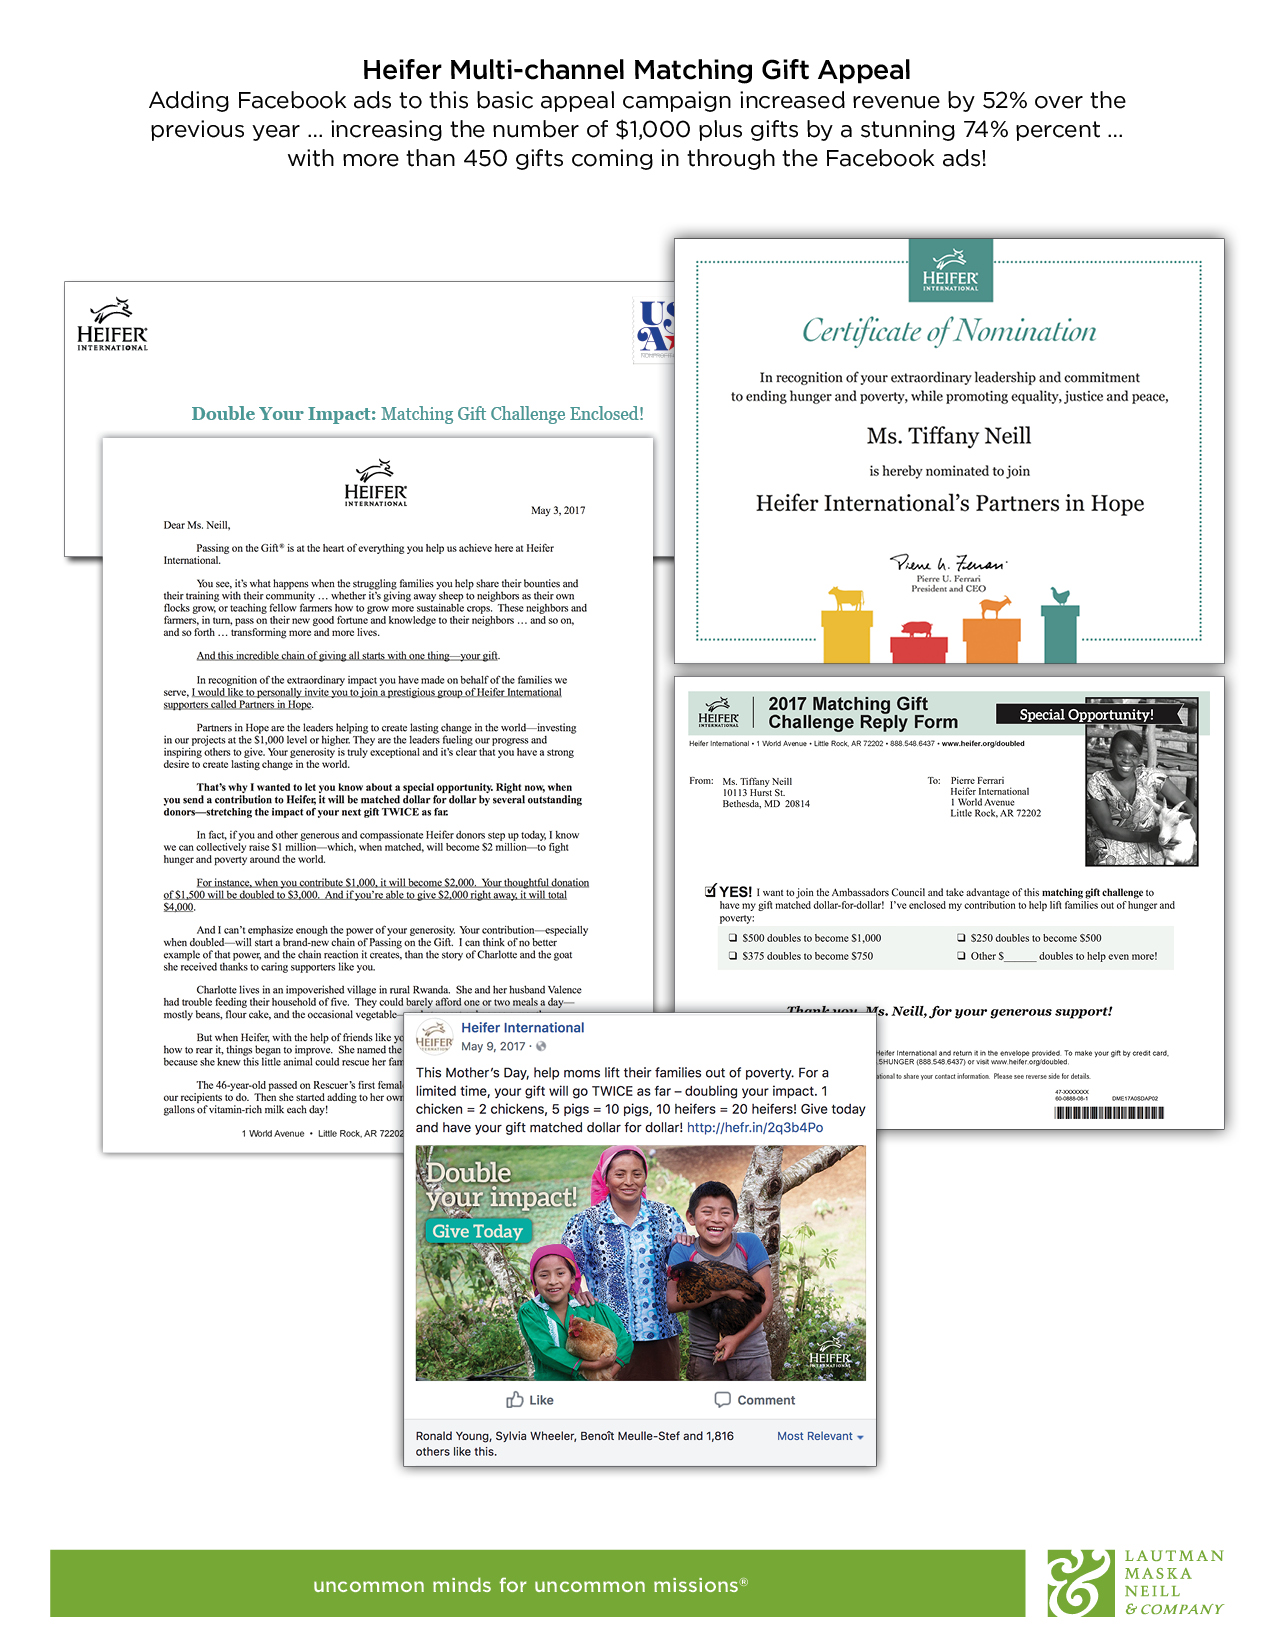 Campaign Update Archives Physicians For Social Responsibility >> Lautman Maska Neill Company Our Awards